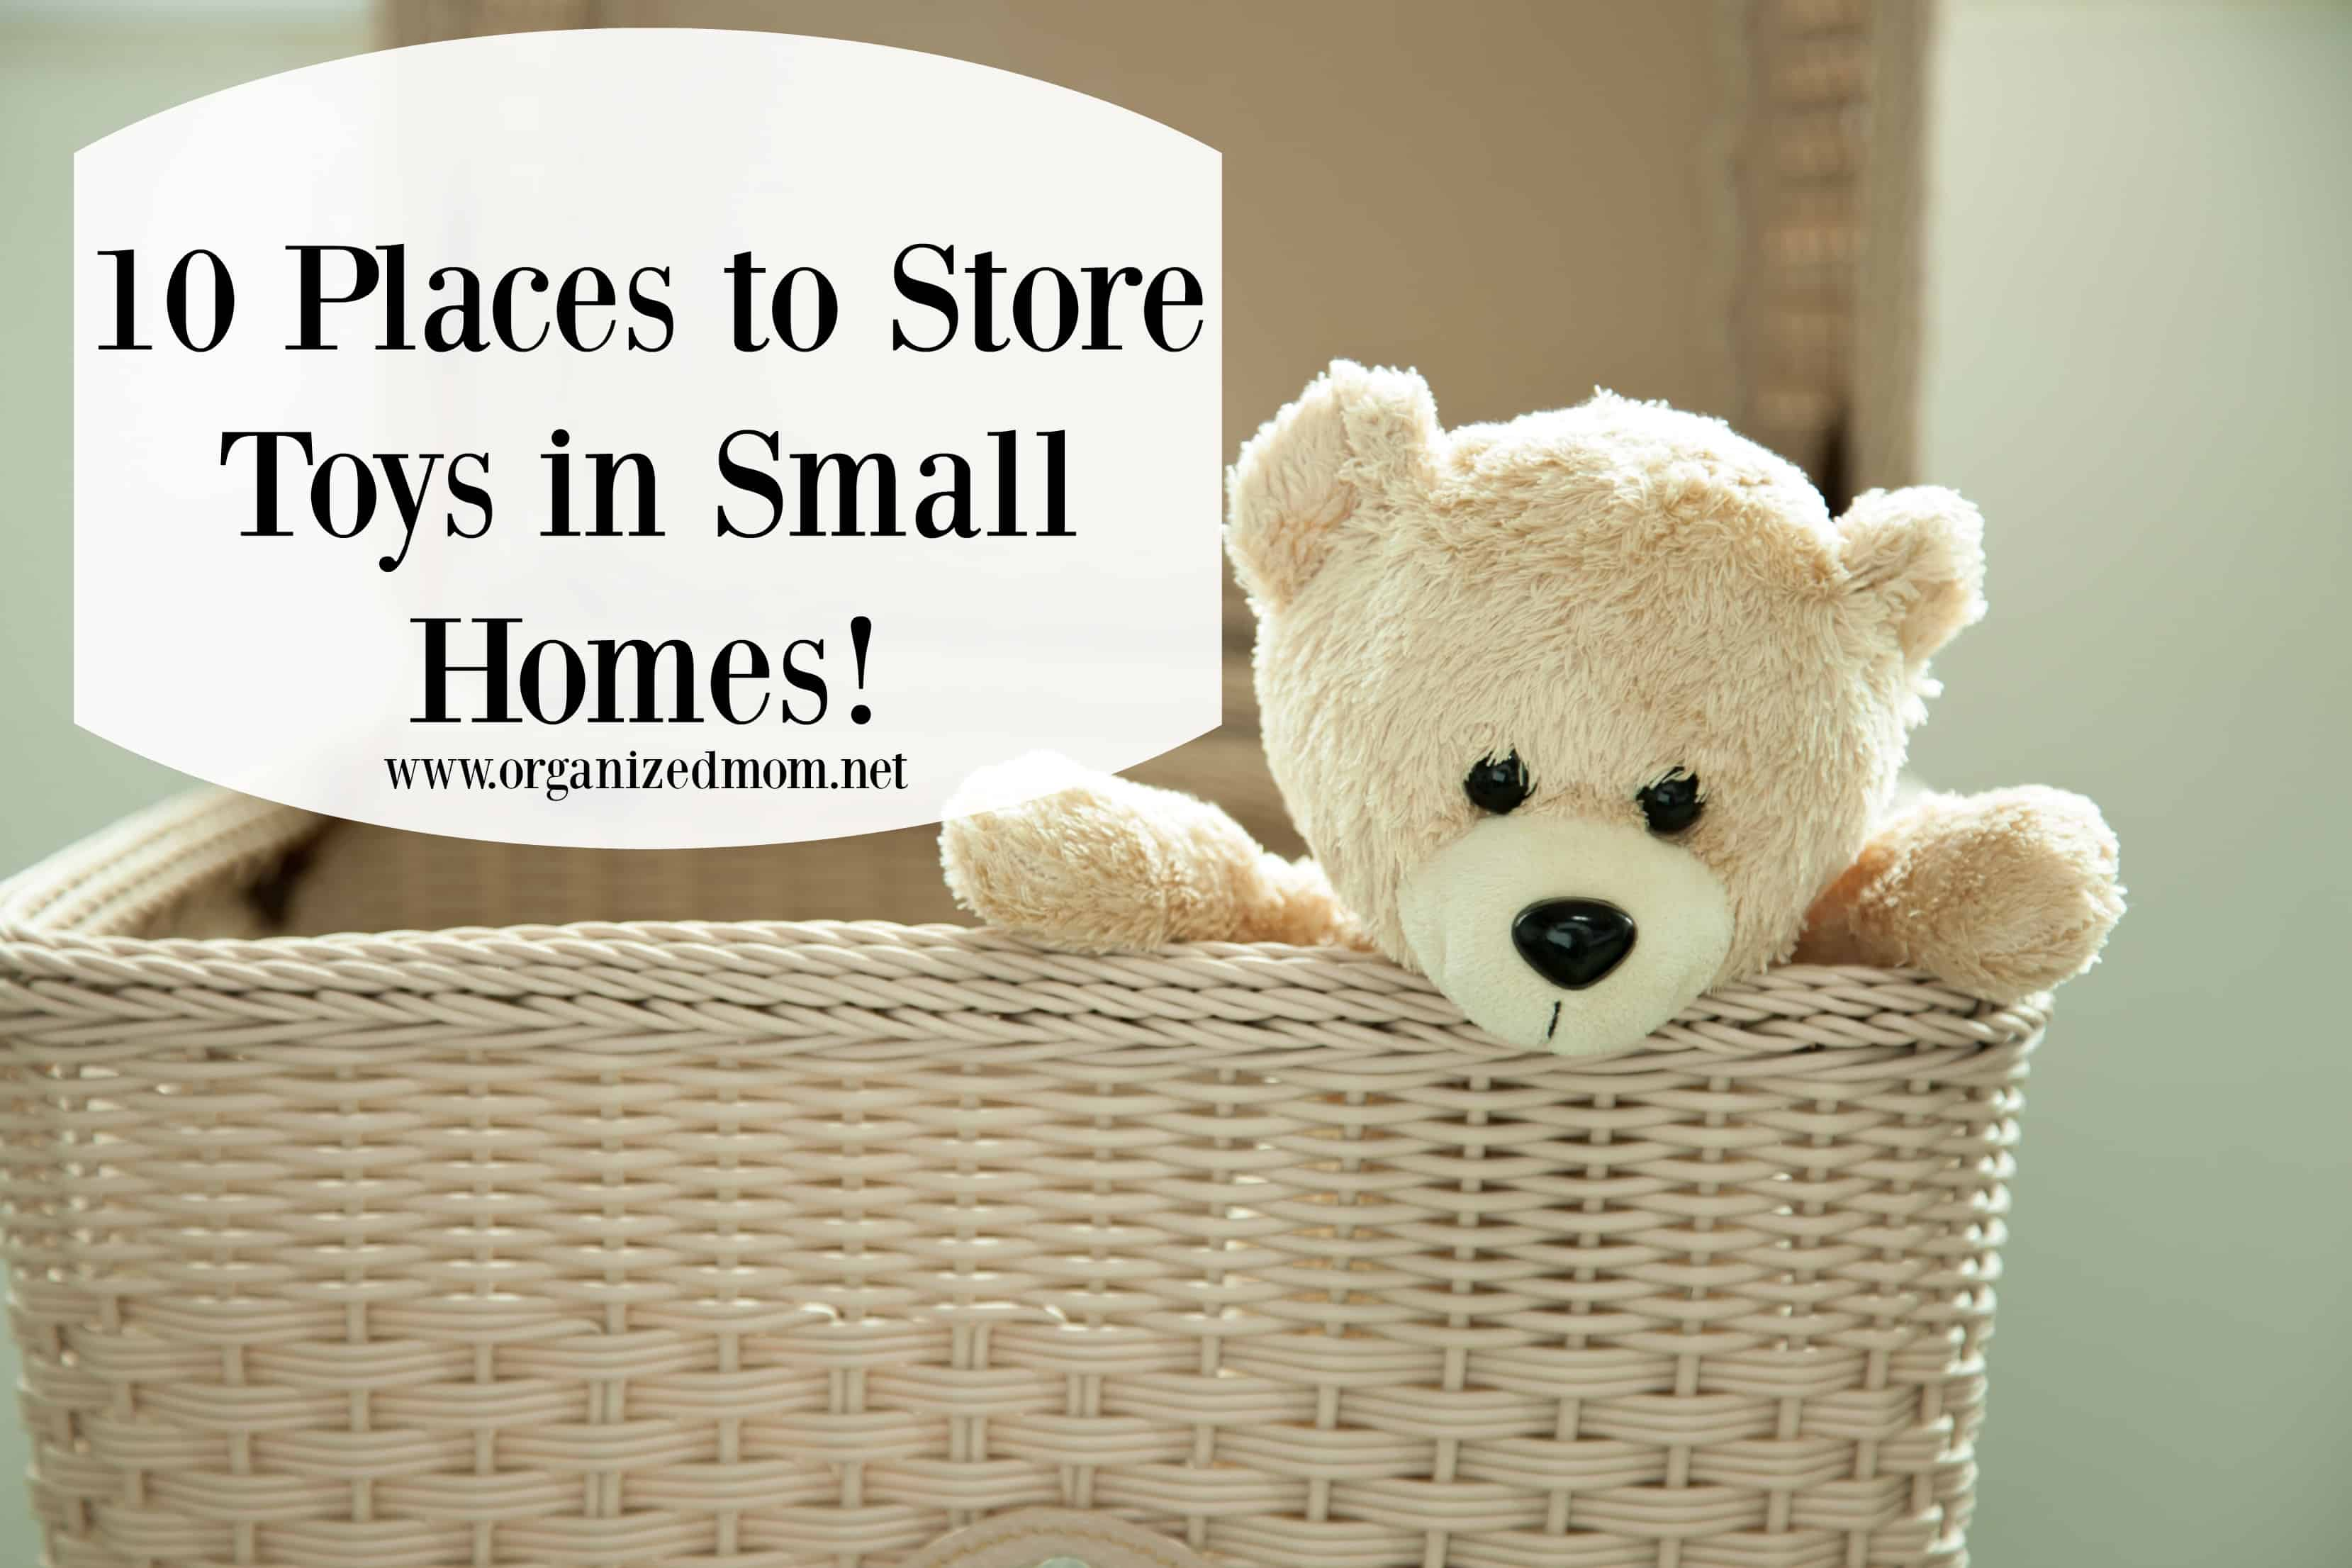 toy teddy bear in basket & 10 Ways to Store Toys in Small Living Spaces - The Organized Mom